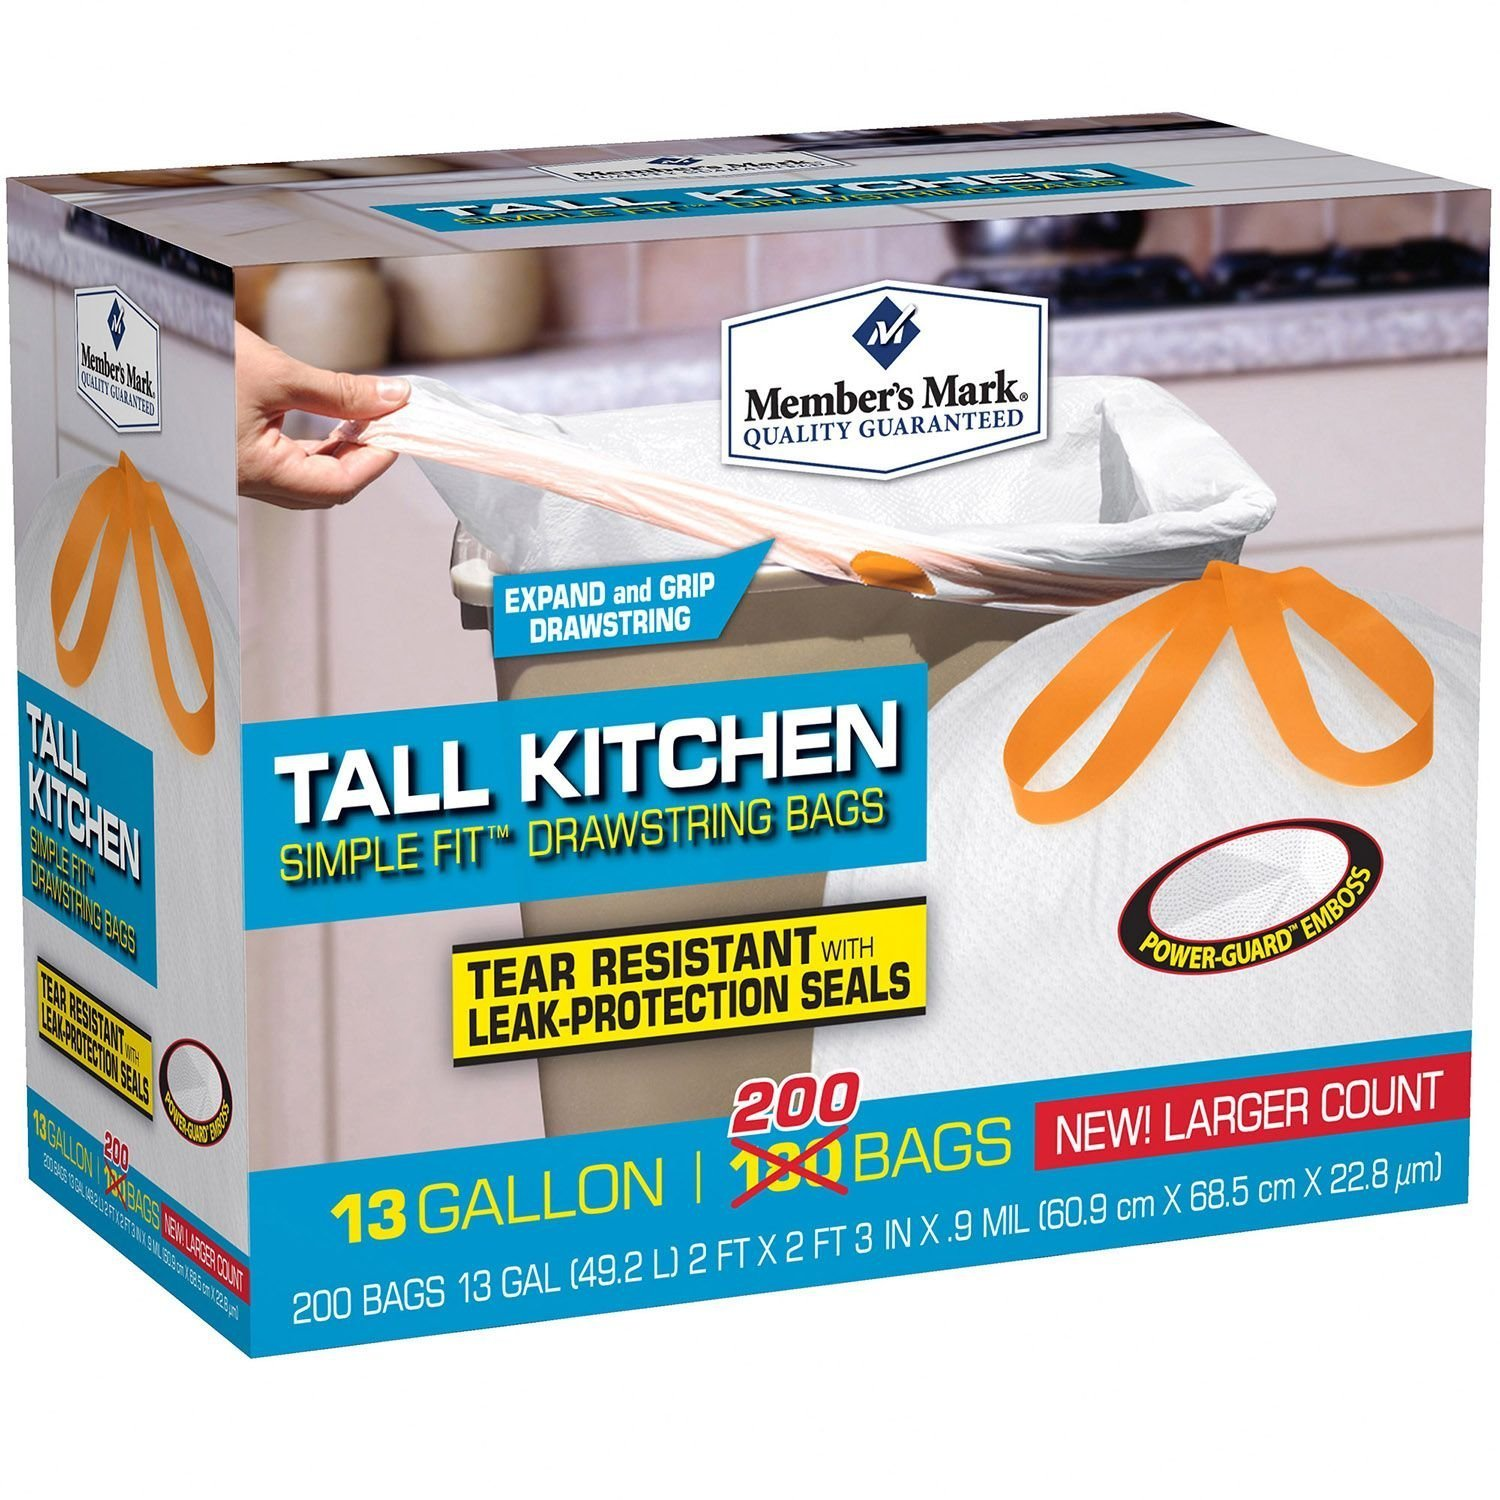 amazoncom members mark tall kitchen simple fit drawstring bags home kitchen - Tall Kitchen Trash Bags